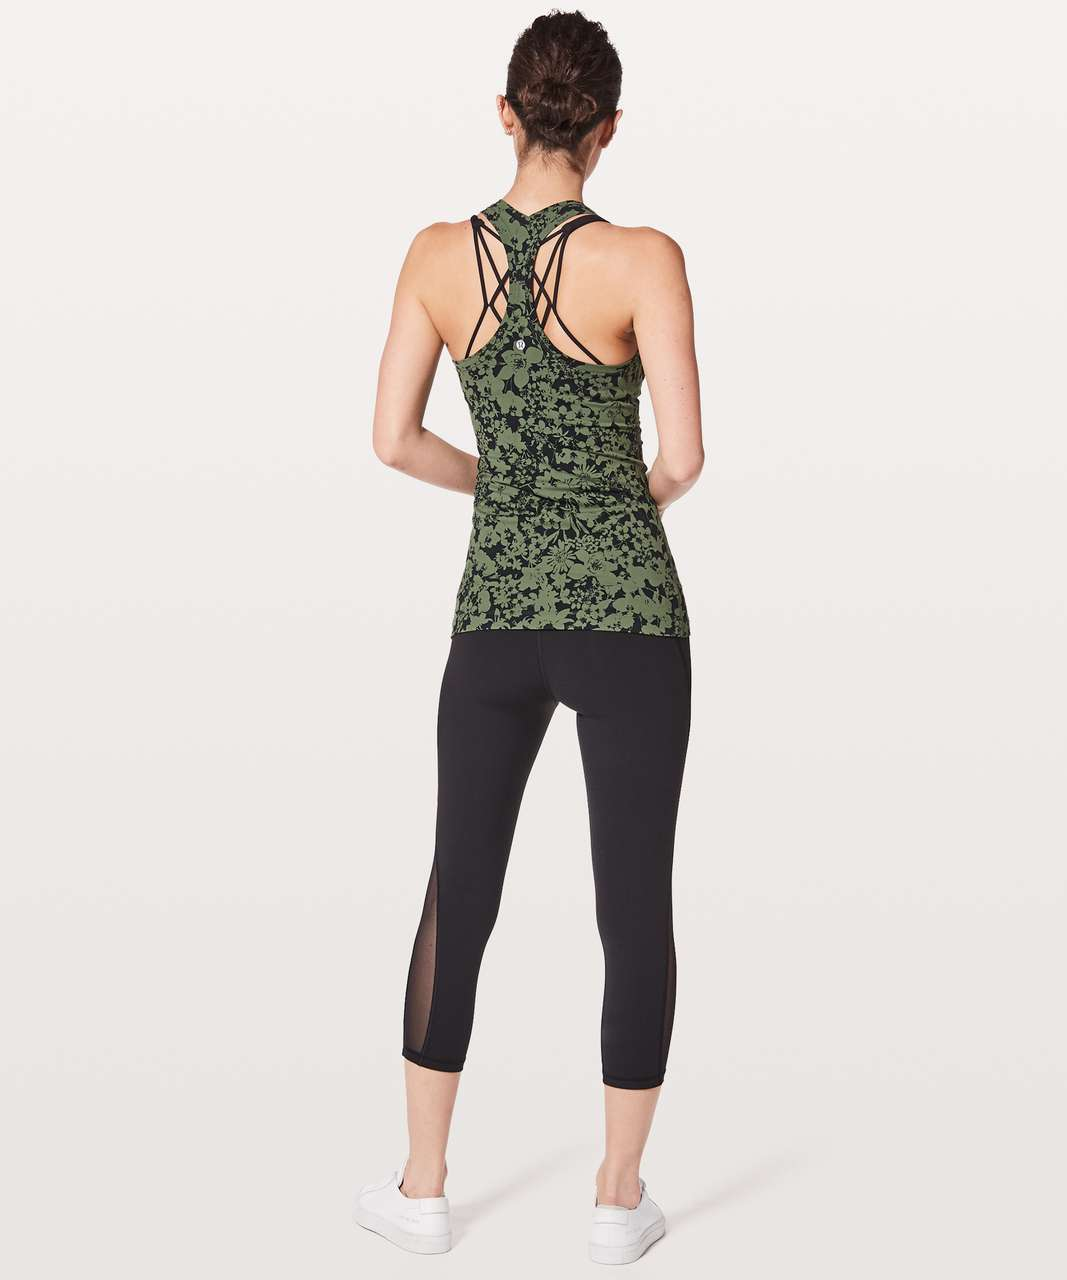 Lululemon Cool Racerback II - Efflorescent Barracks Green Black